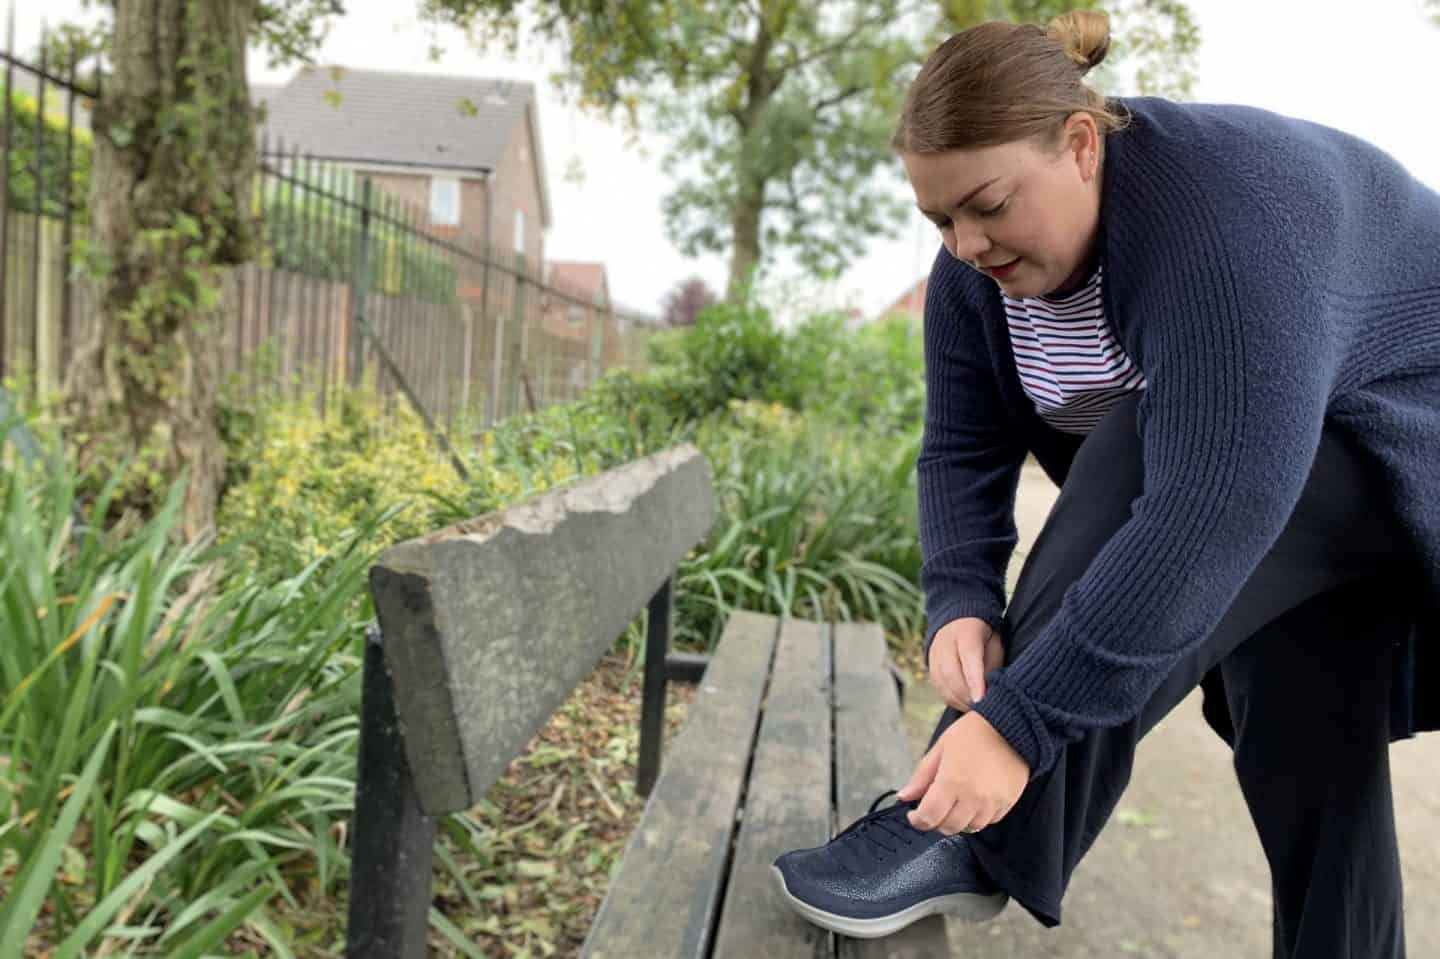 Fastening shoe laces on park bench